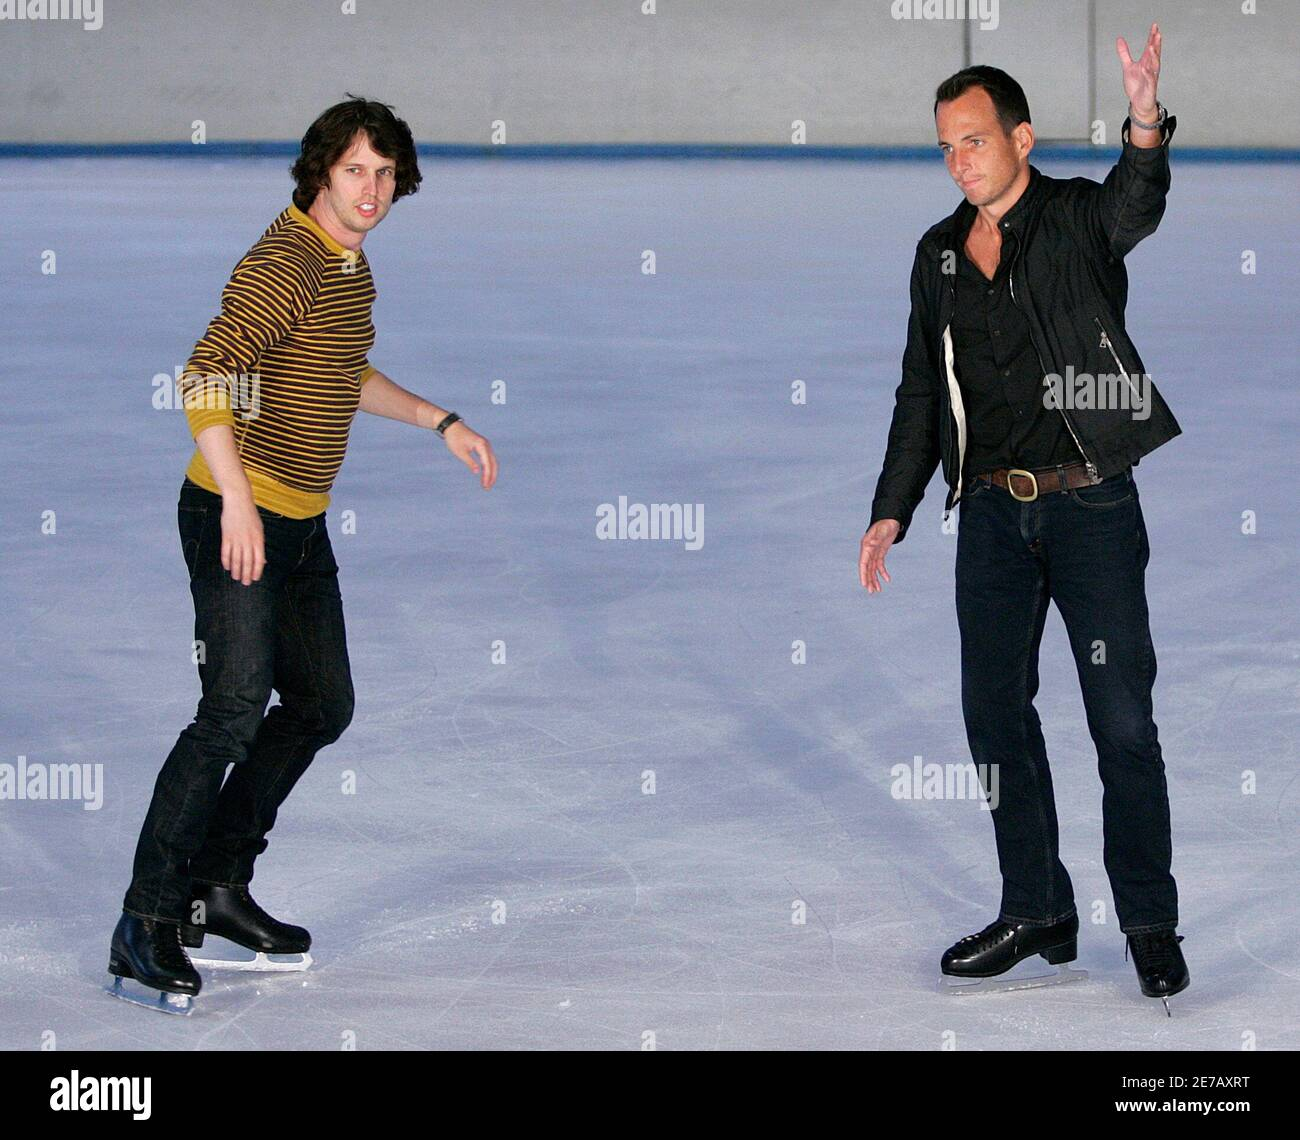 """Actors Jon Heder (L) and Will Arnett pose for photographers during a media opportunity at an ice skating rink to promote their film """"Blades of Glory"""" in Sydney June 6, 2007.         REUTERS/Tim Wimborne     (AUSTRALIA) Foto de stock"""